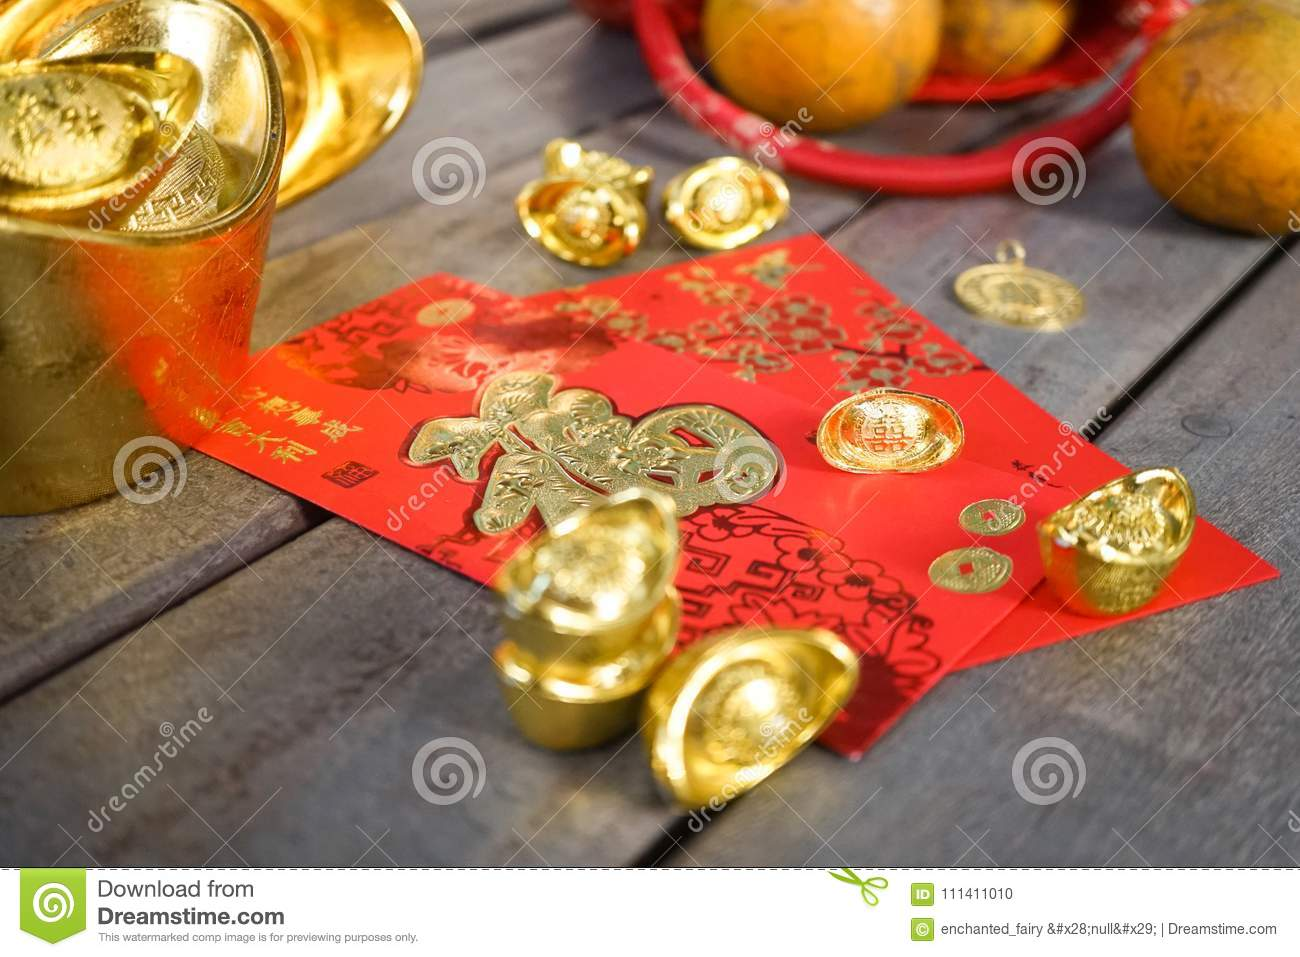 Chinese New Year ornaments with oranges, gold ingots and red envelopes or hong pao on wood background. Selective focus. Chinese